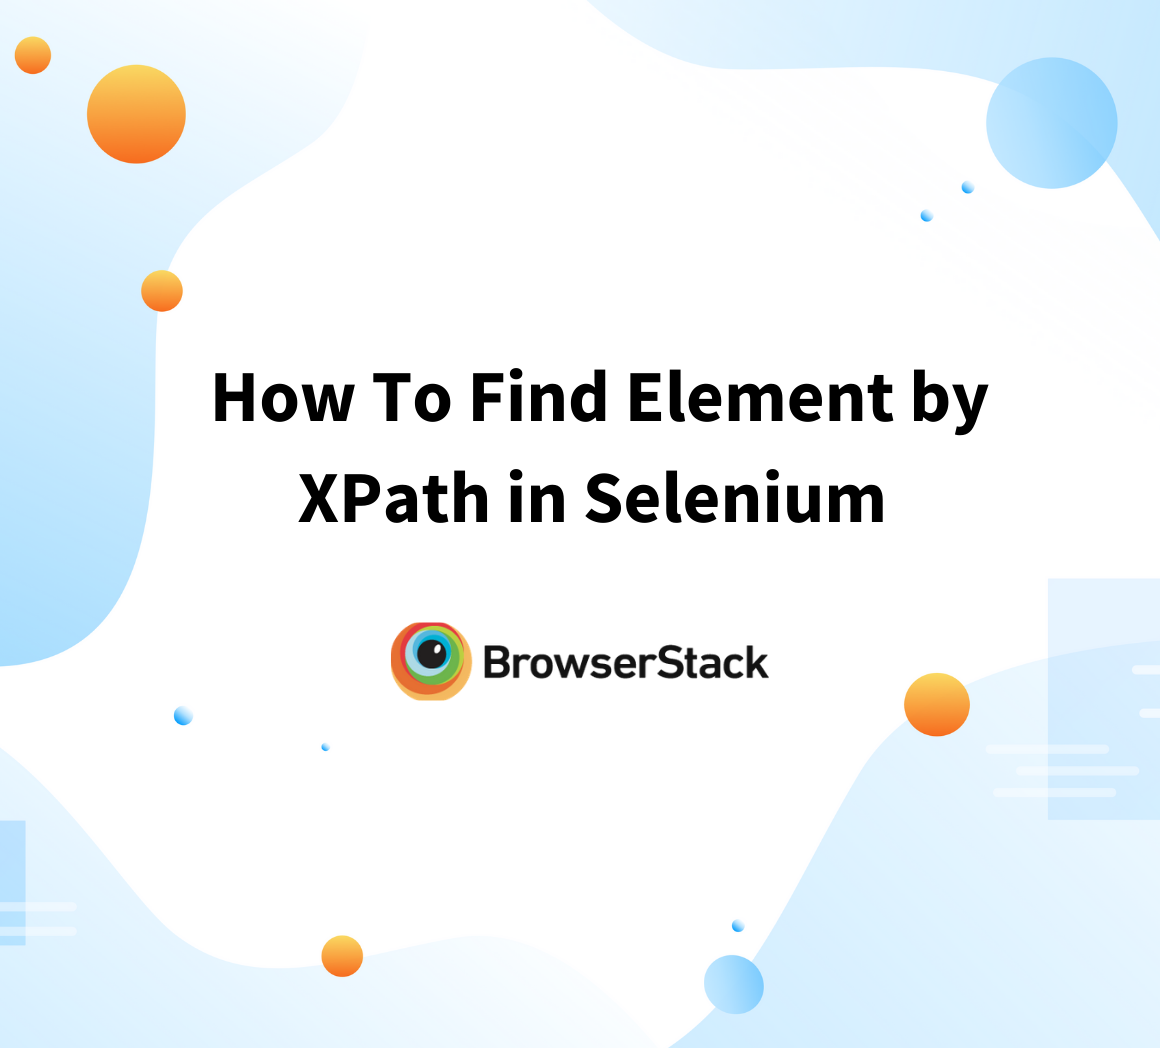 How to find element by XPath in Selenium